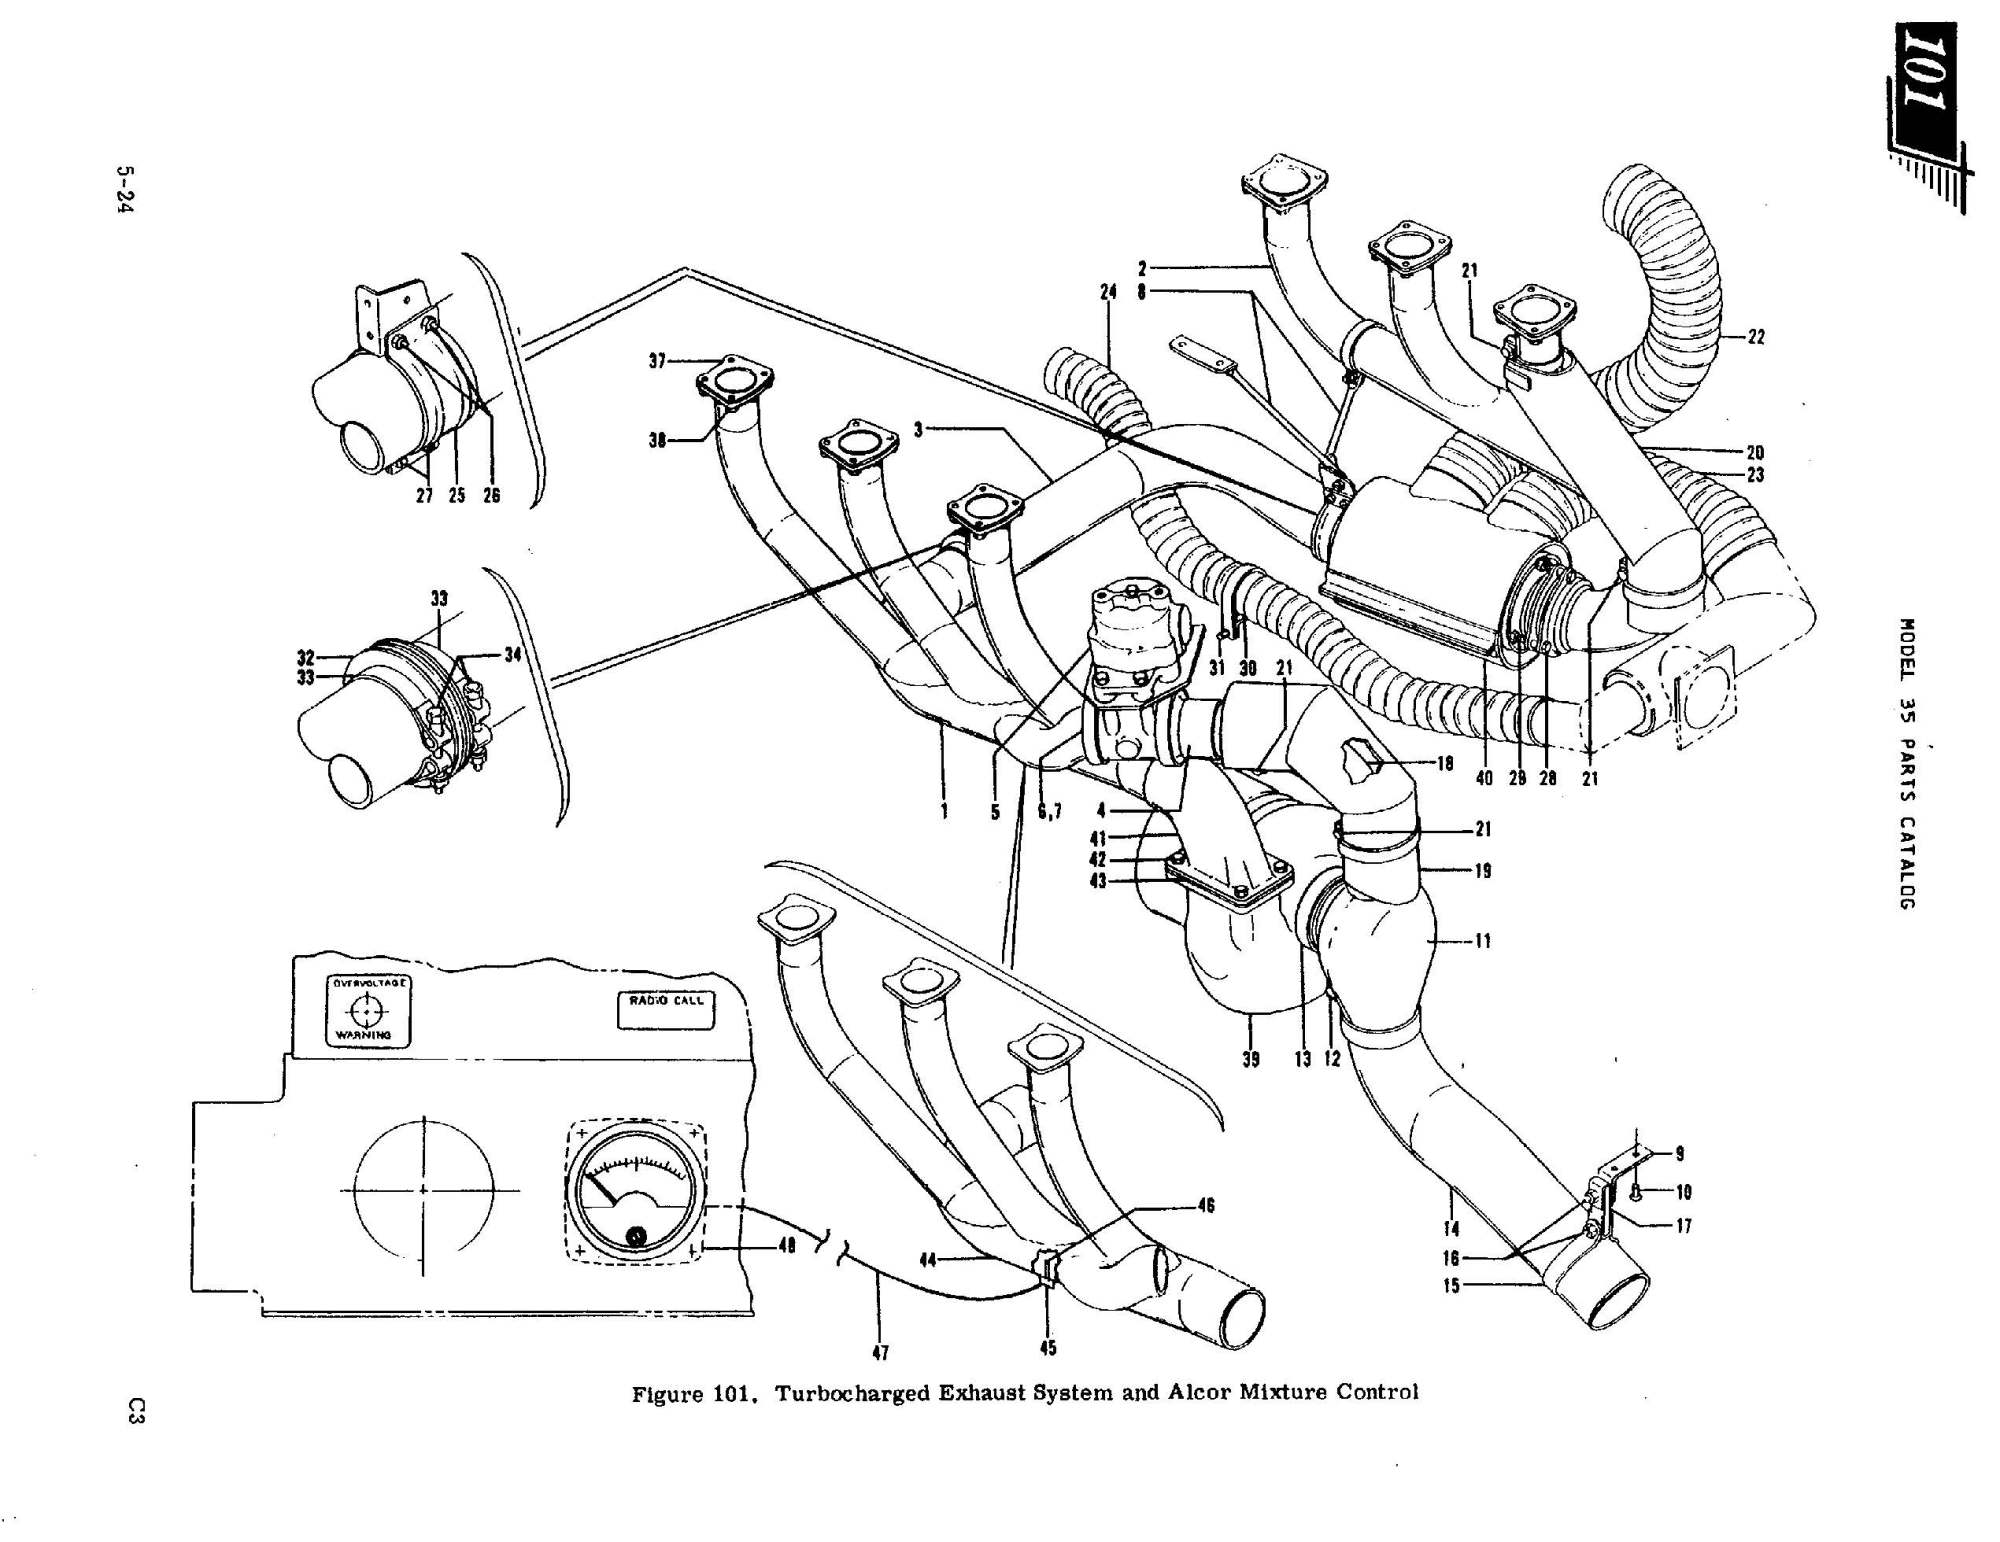 hight resolution of  designed and introduced the turbo charged bonanzas below is a diagram of the t c exhaust system applicable to the tsio 520d in v35tc v35atc v35btc